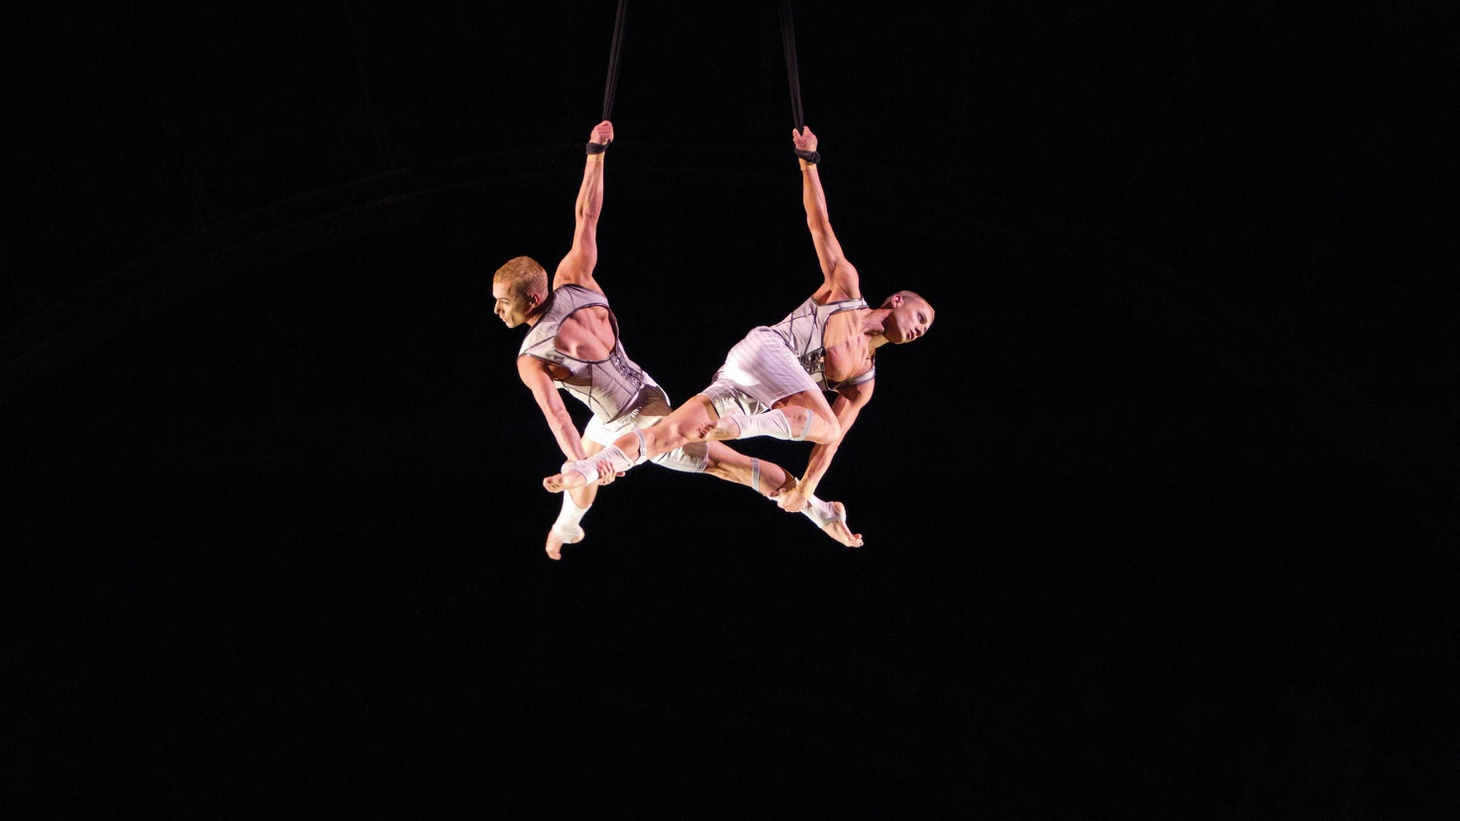 Let's start with what works in Cirque du Soleil's $100 million spectacle Iris at the Kodak Theatre in Hollywood...